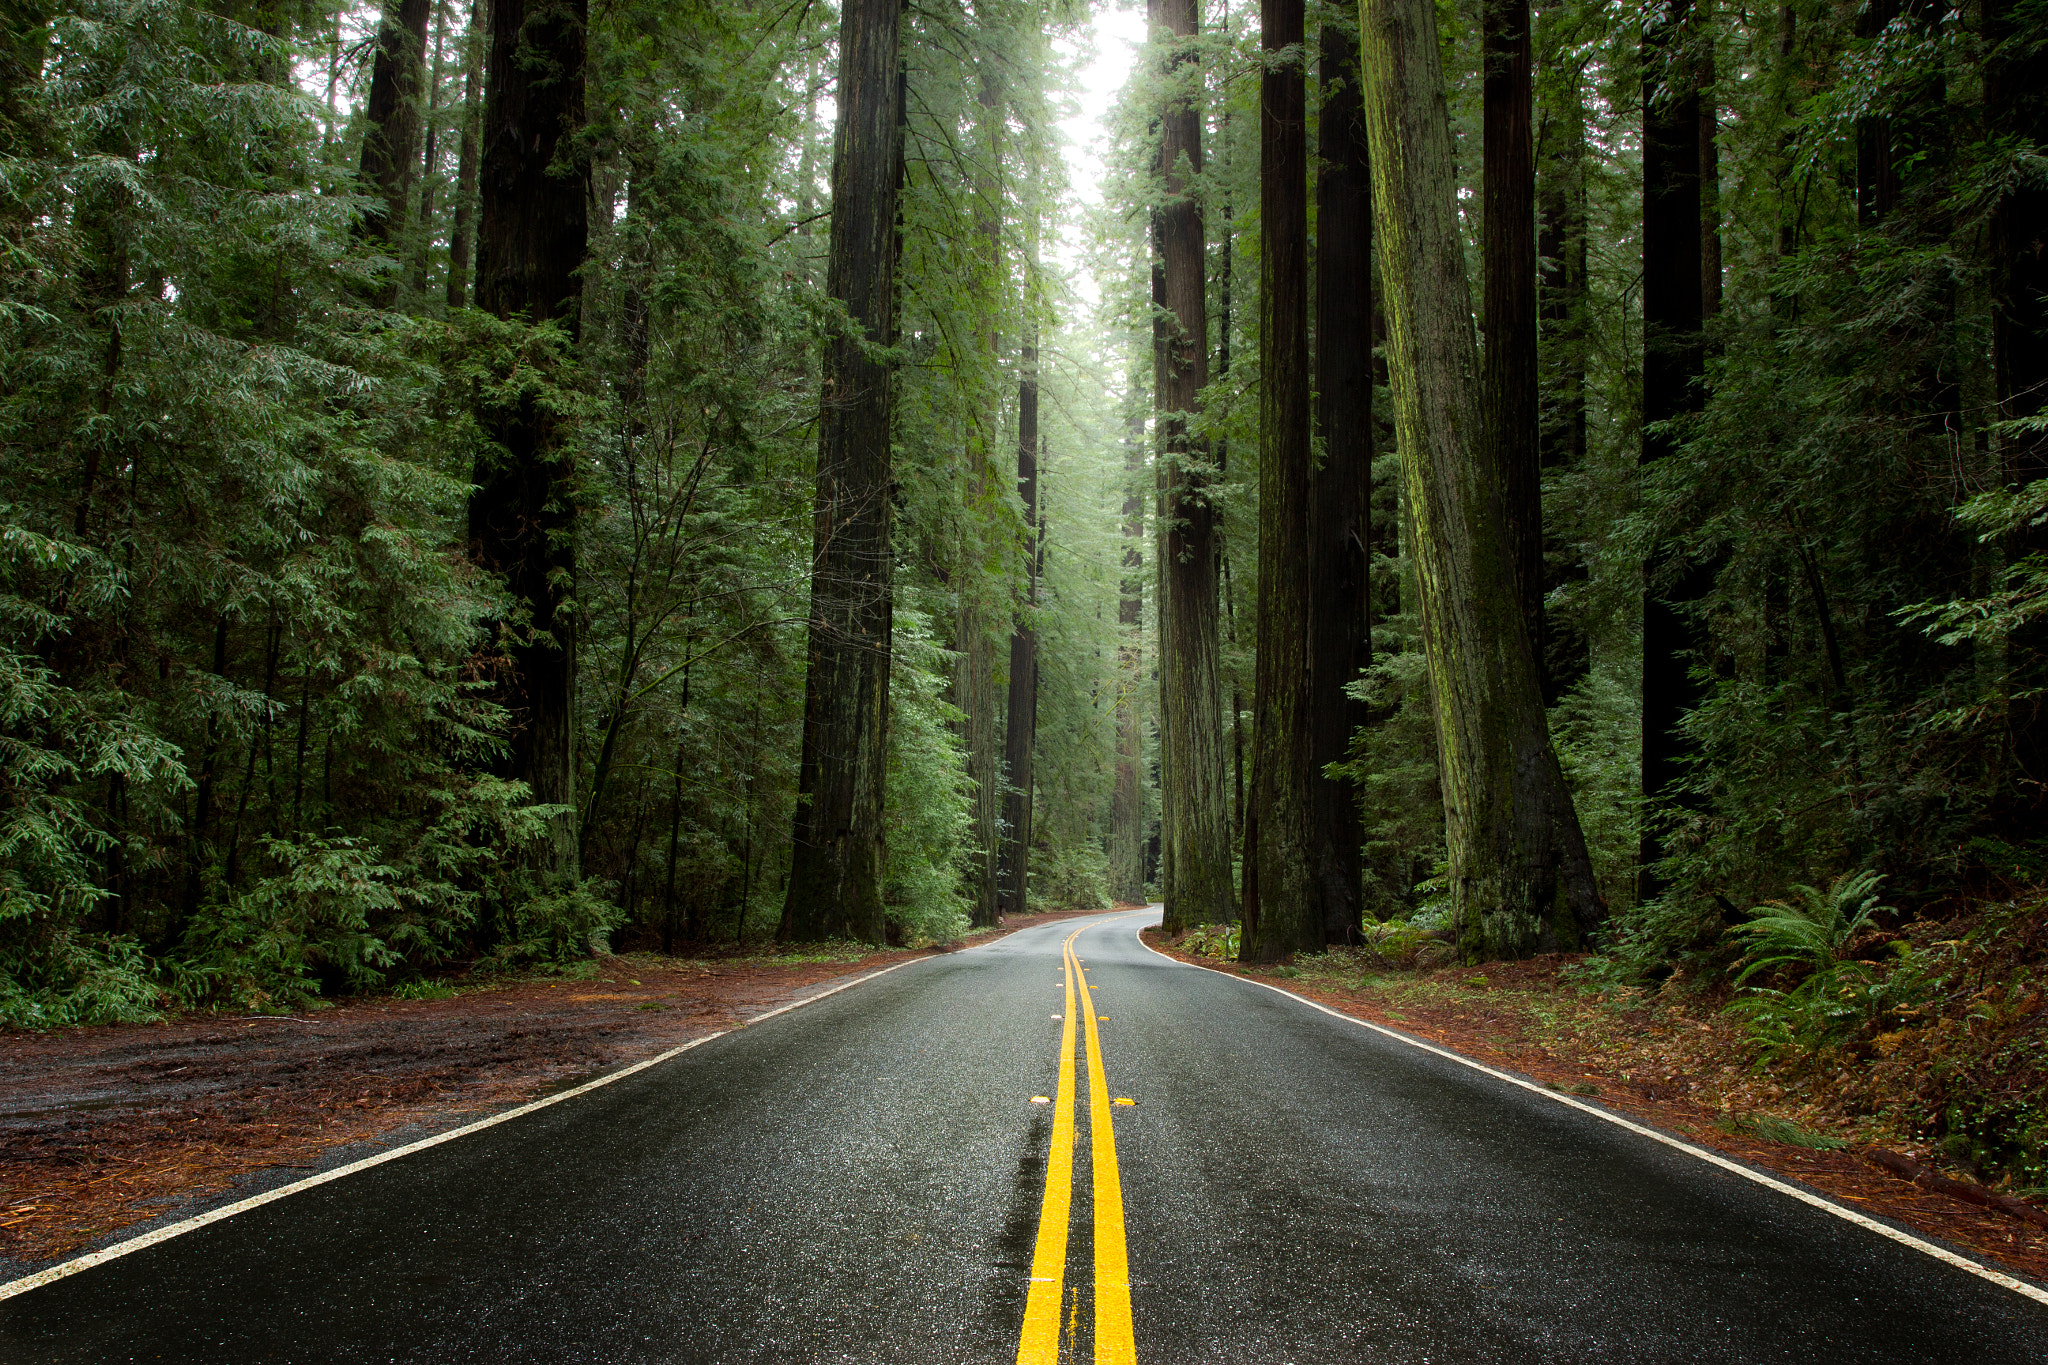 Photograph Avenue of the Giants by Justin Jones on 500px